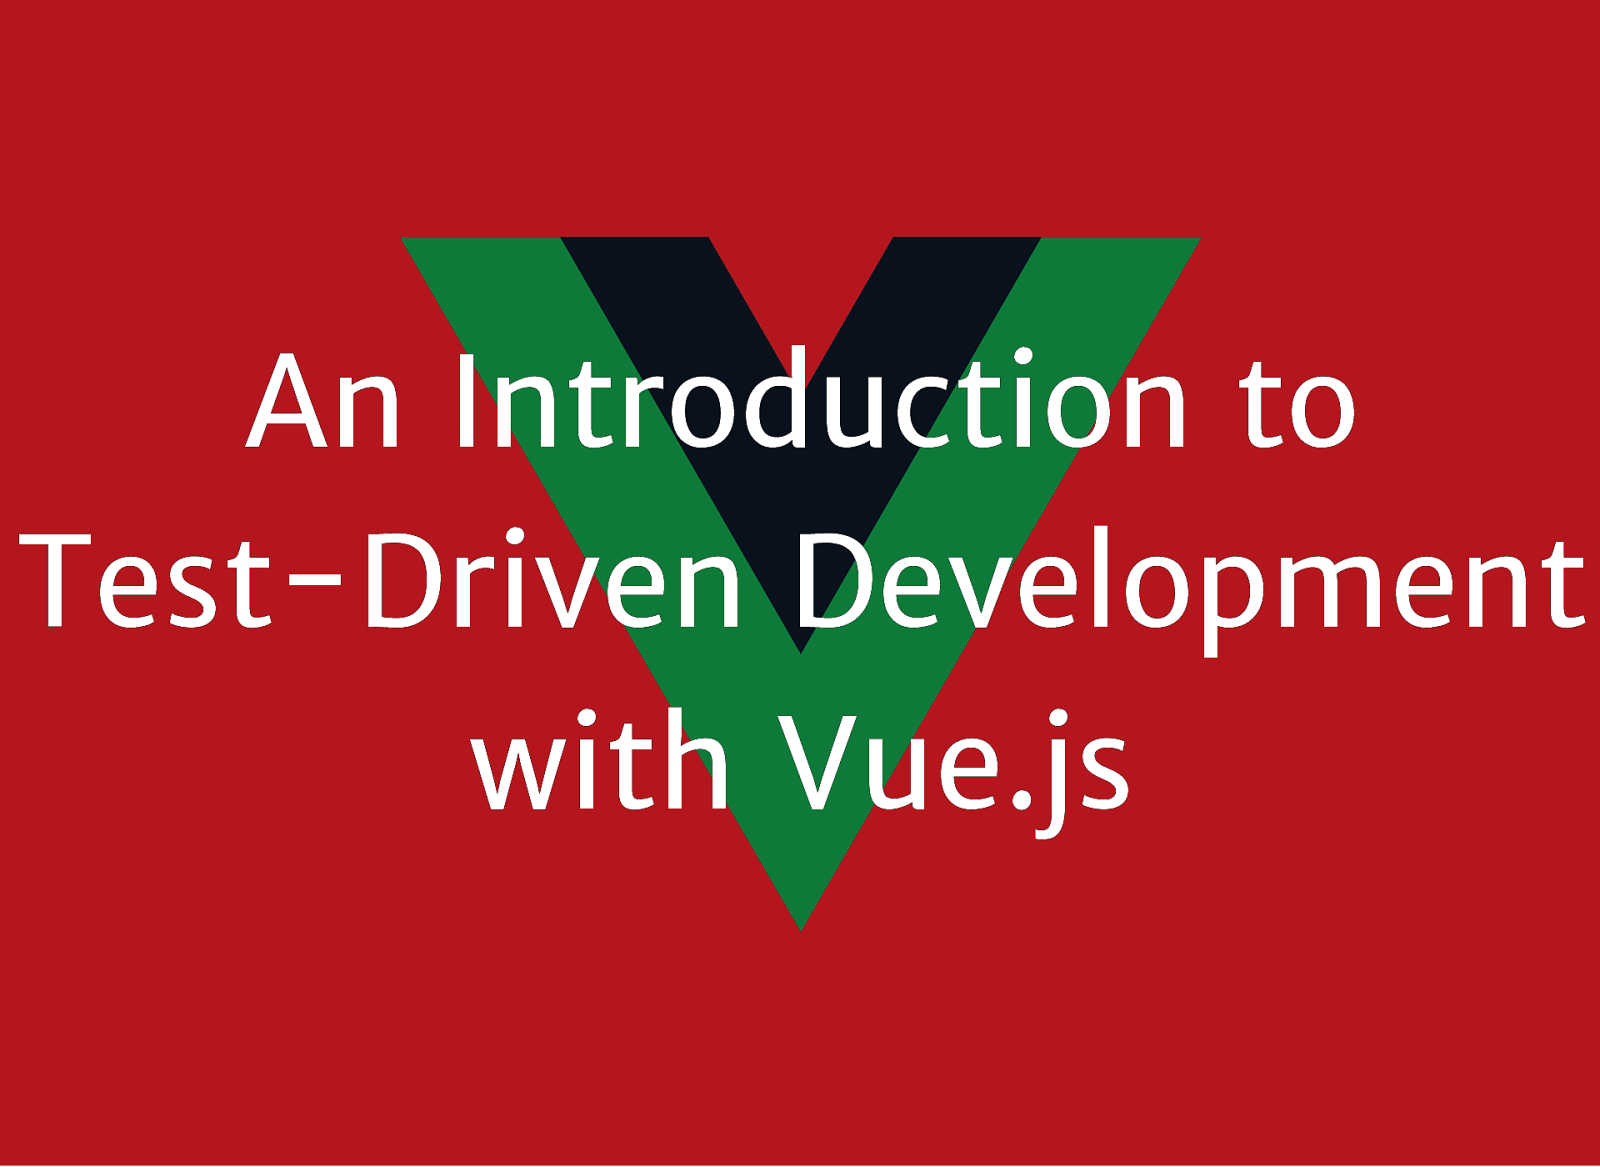 An Introduction to TDD with Vue.js